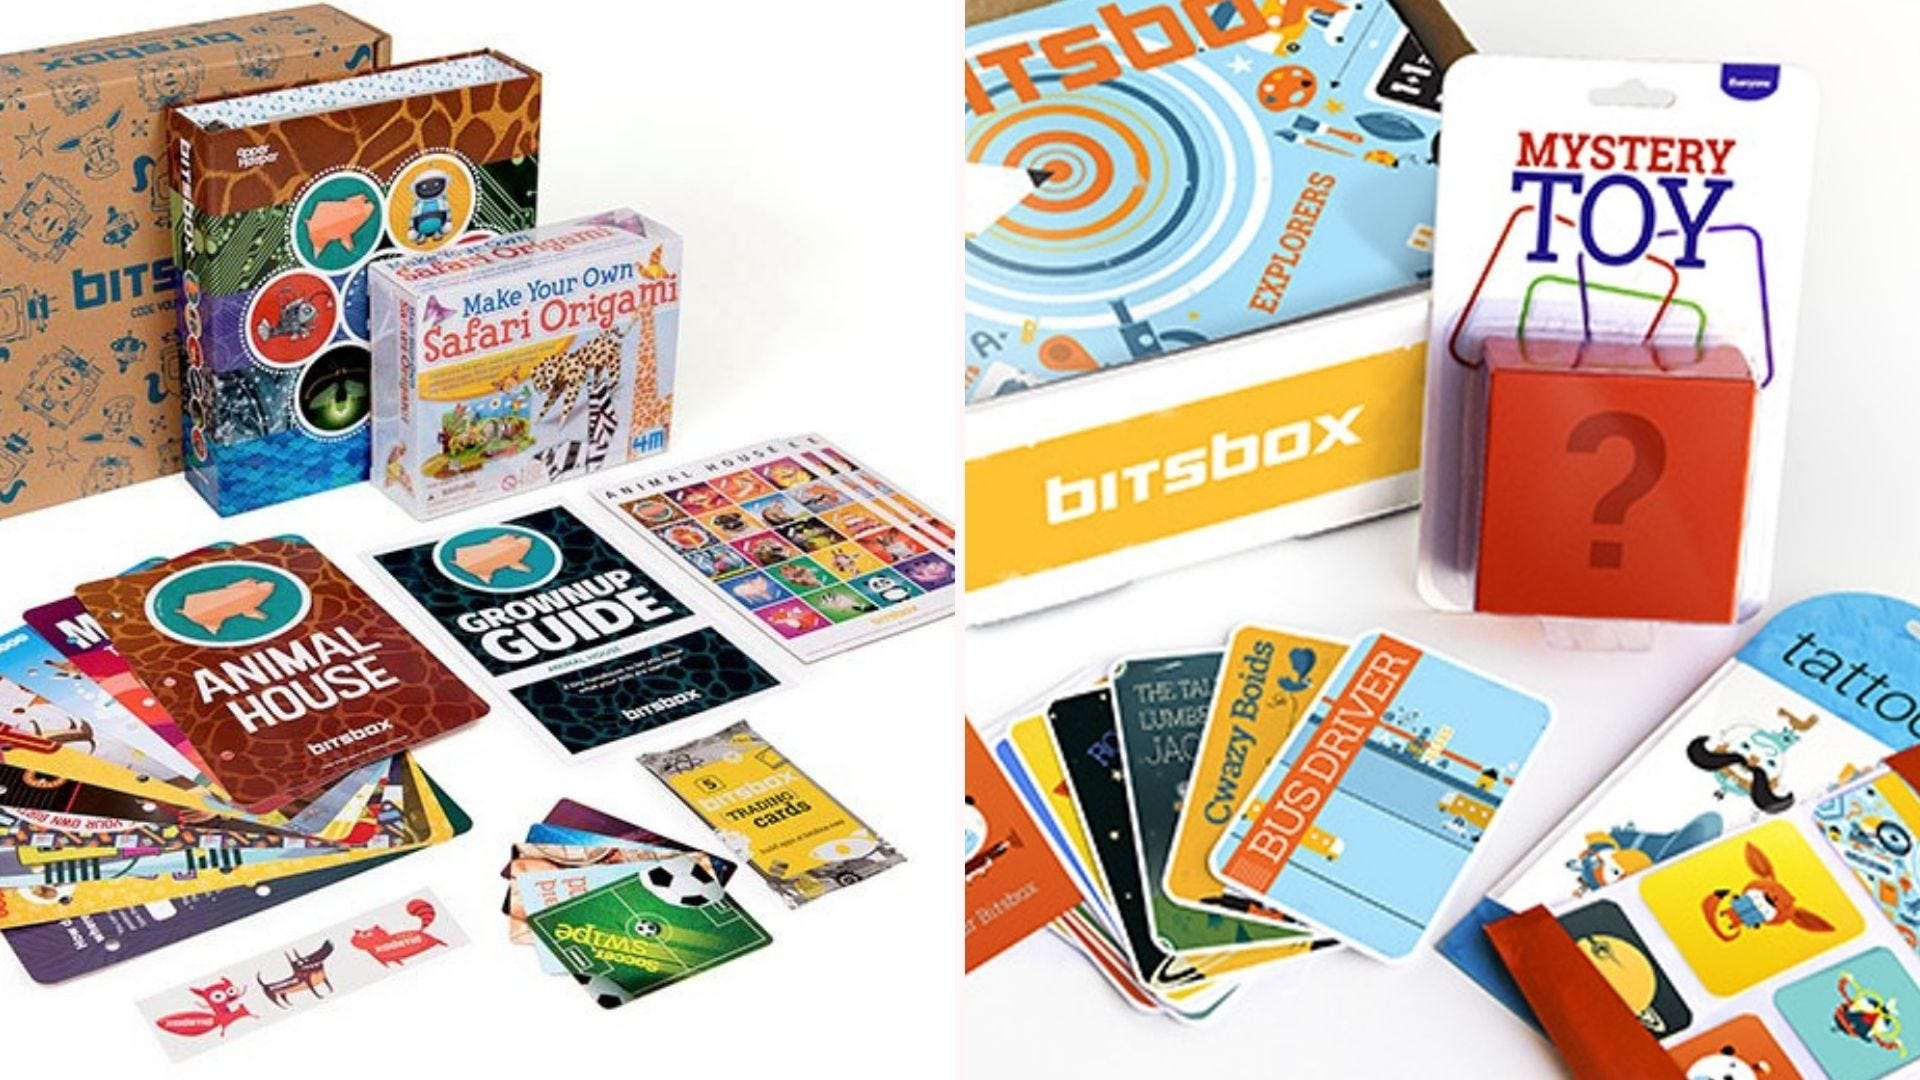 Two Bitsbox boxes with a variety of colorful coding cards spread out